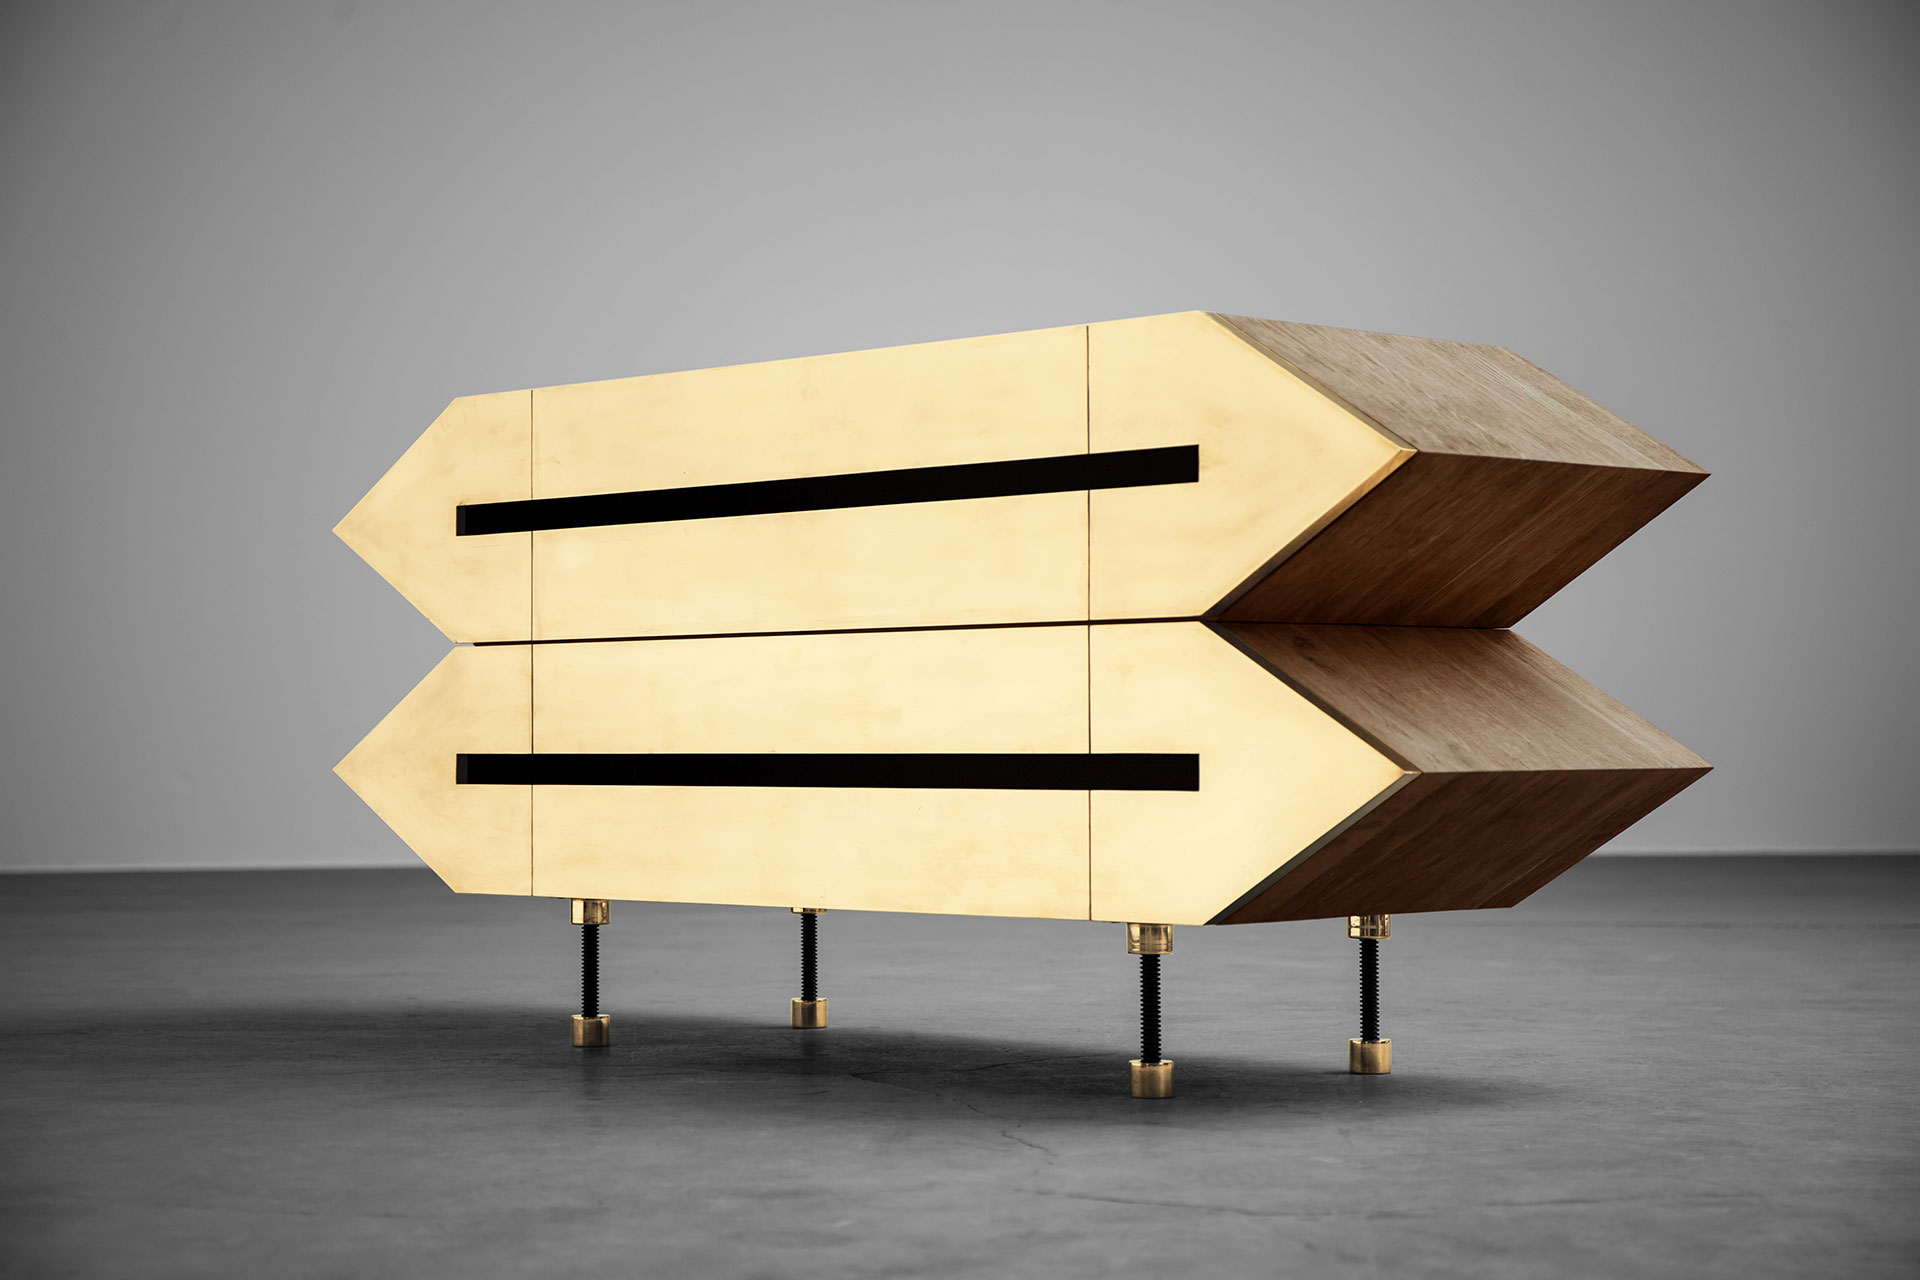 Brutalist design sideboard with brass doors inspired by futuristic architecture